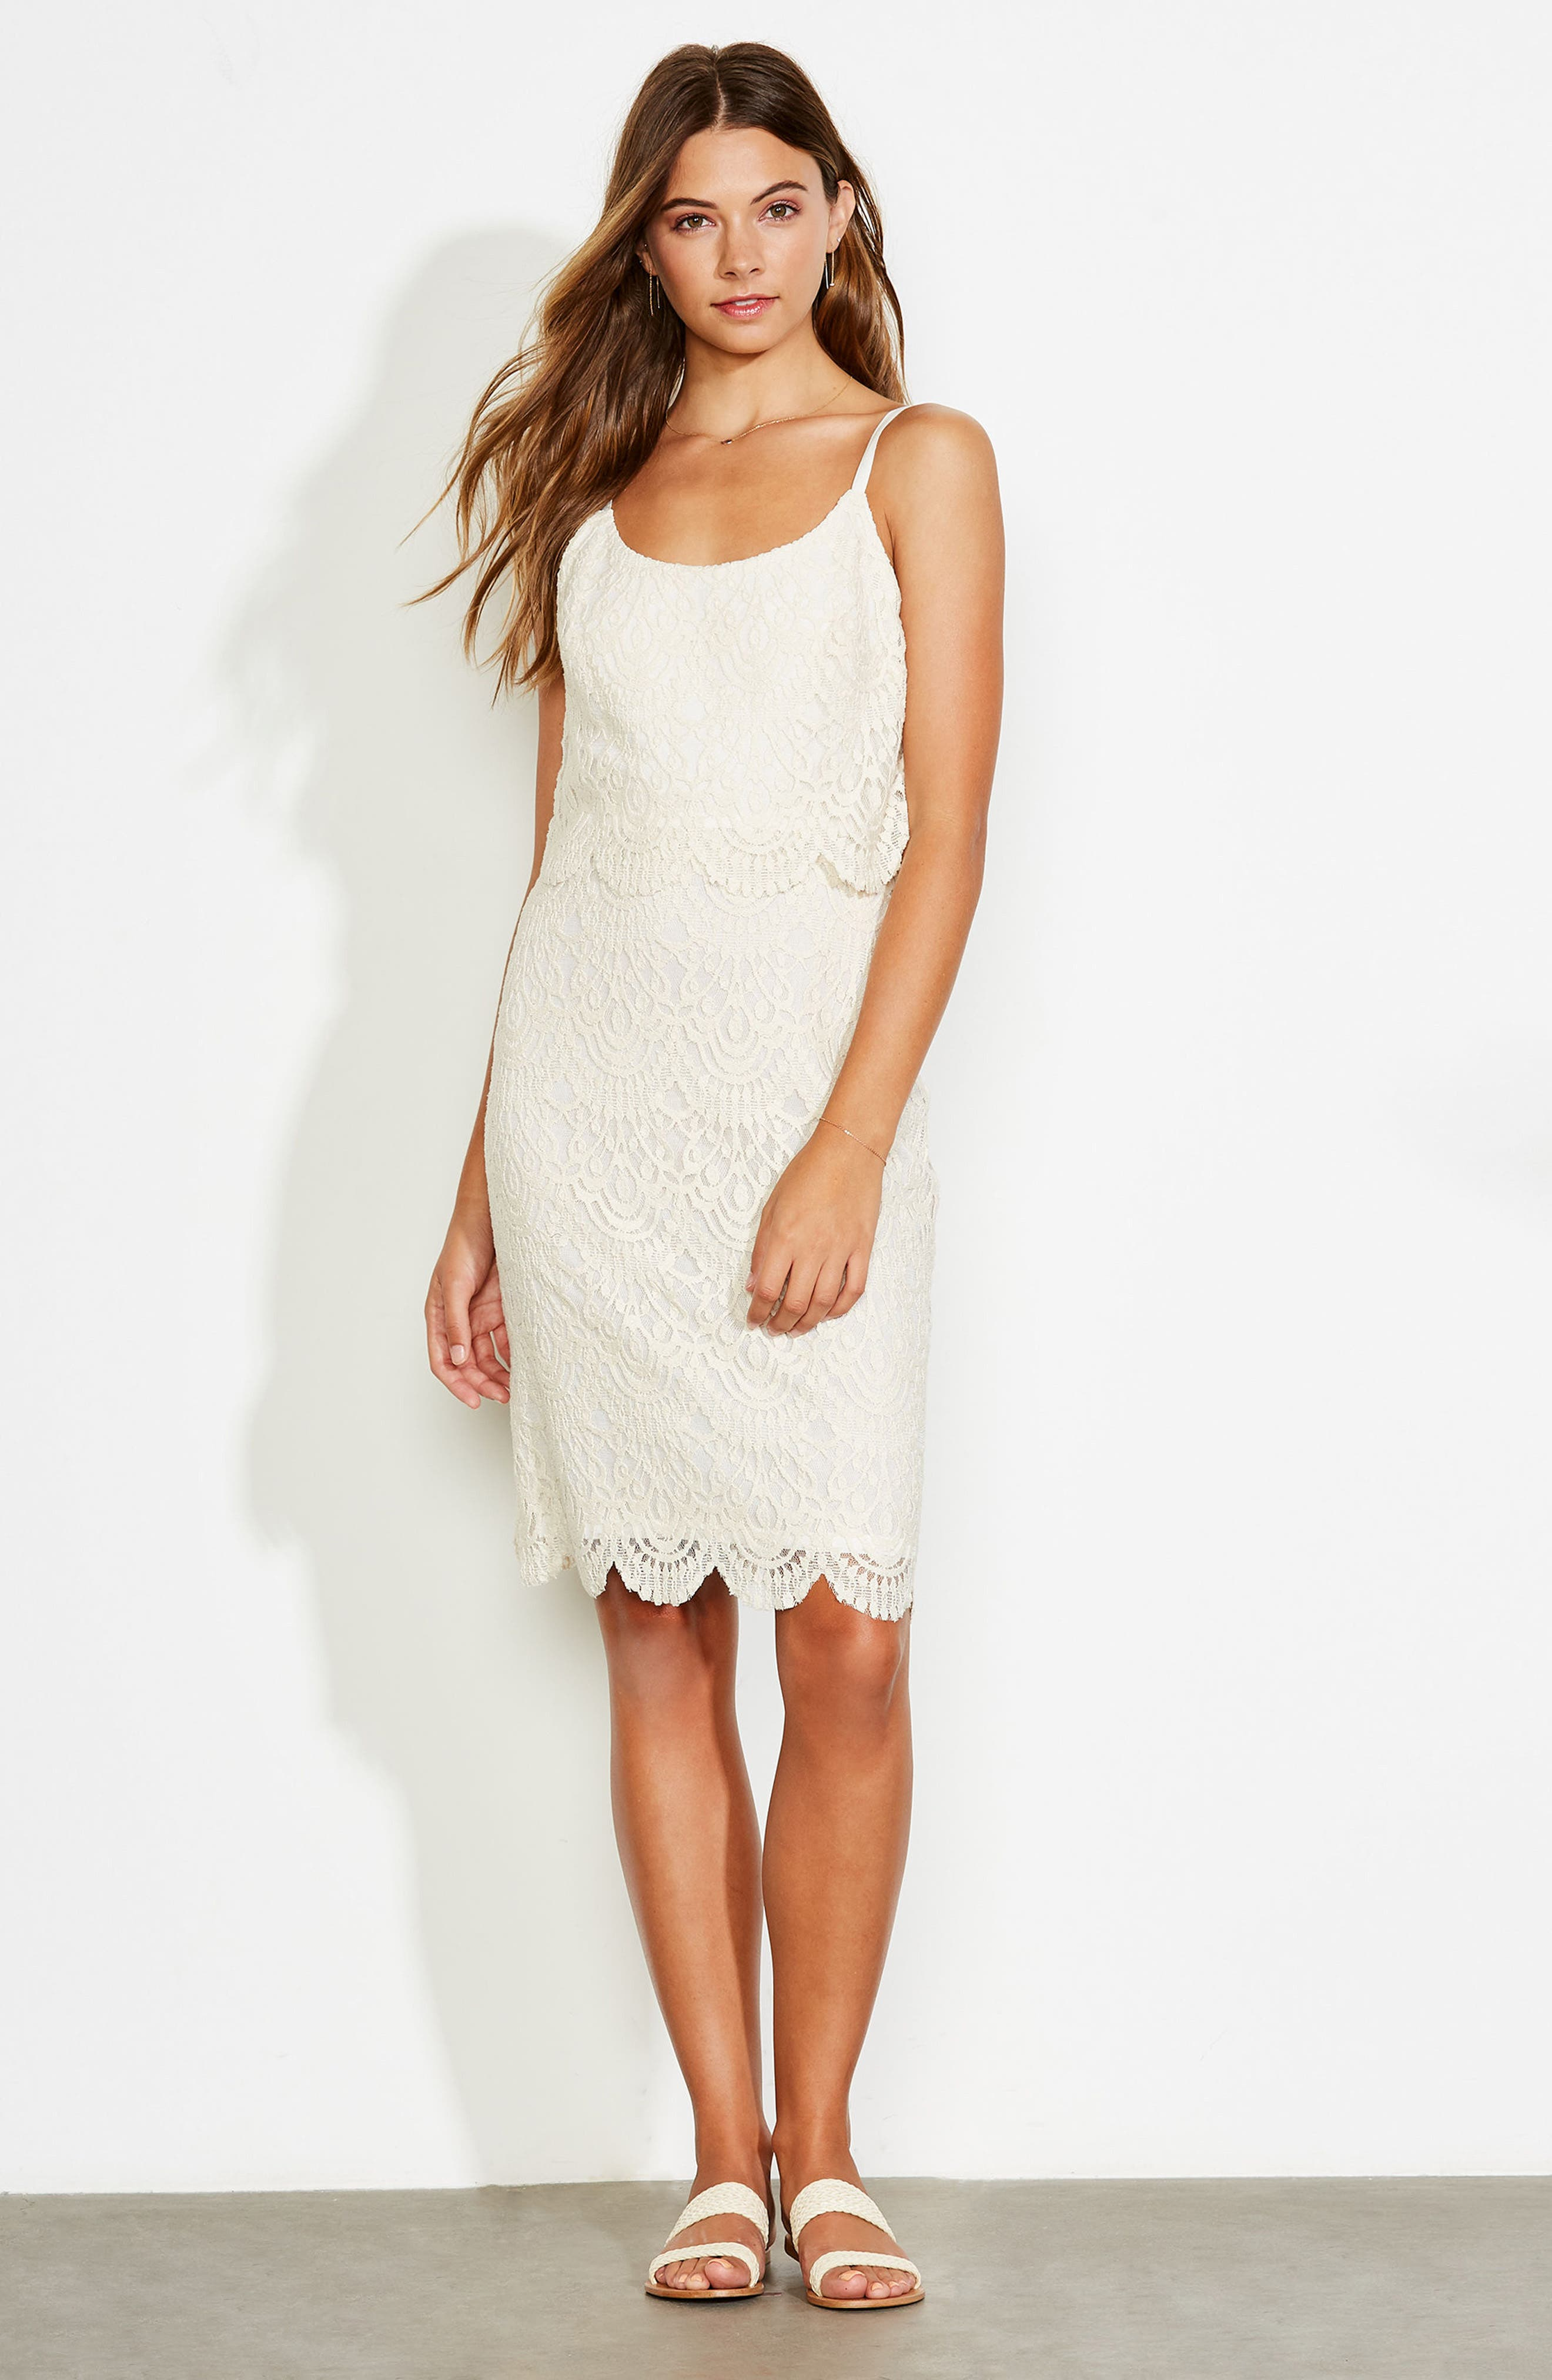 Barnsdall Afternoon Tiered Lace Dress,                             Alternate thumbnail 7, color,                             900